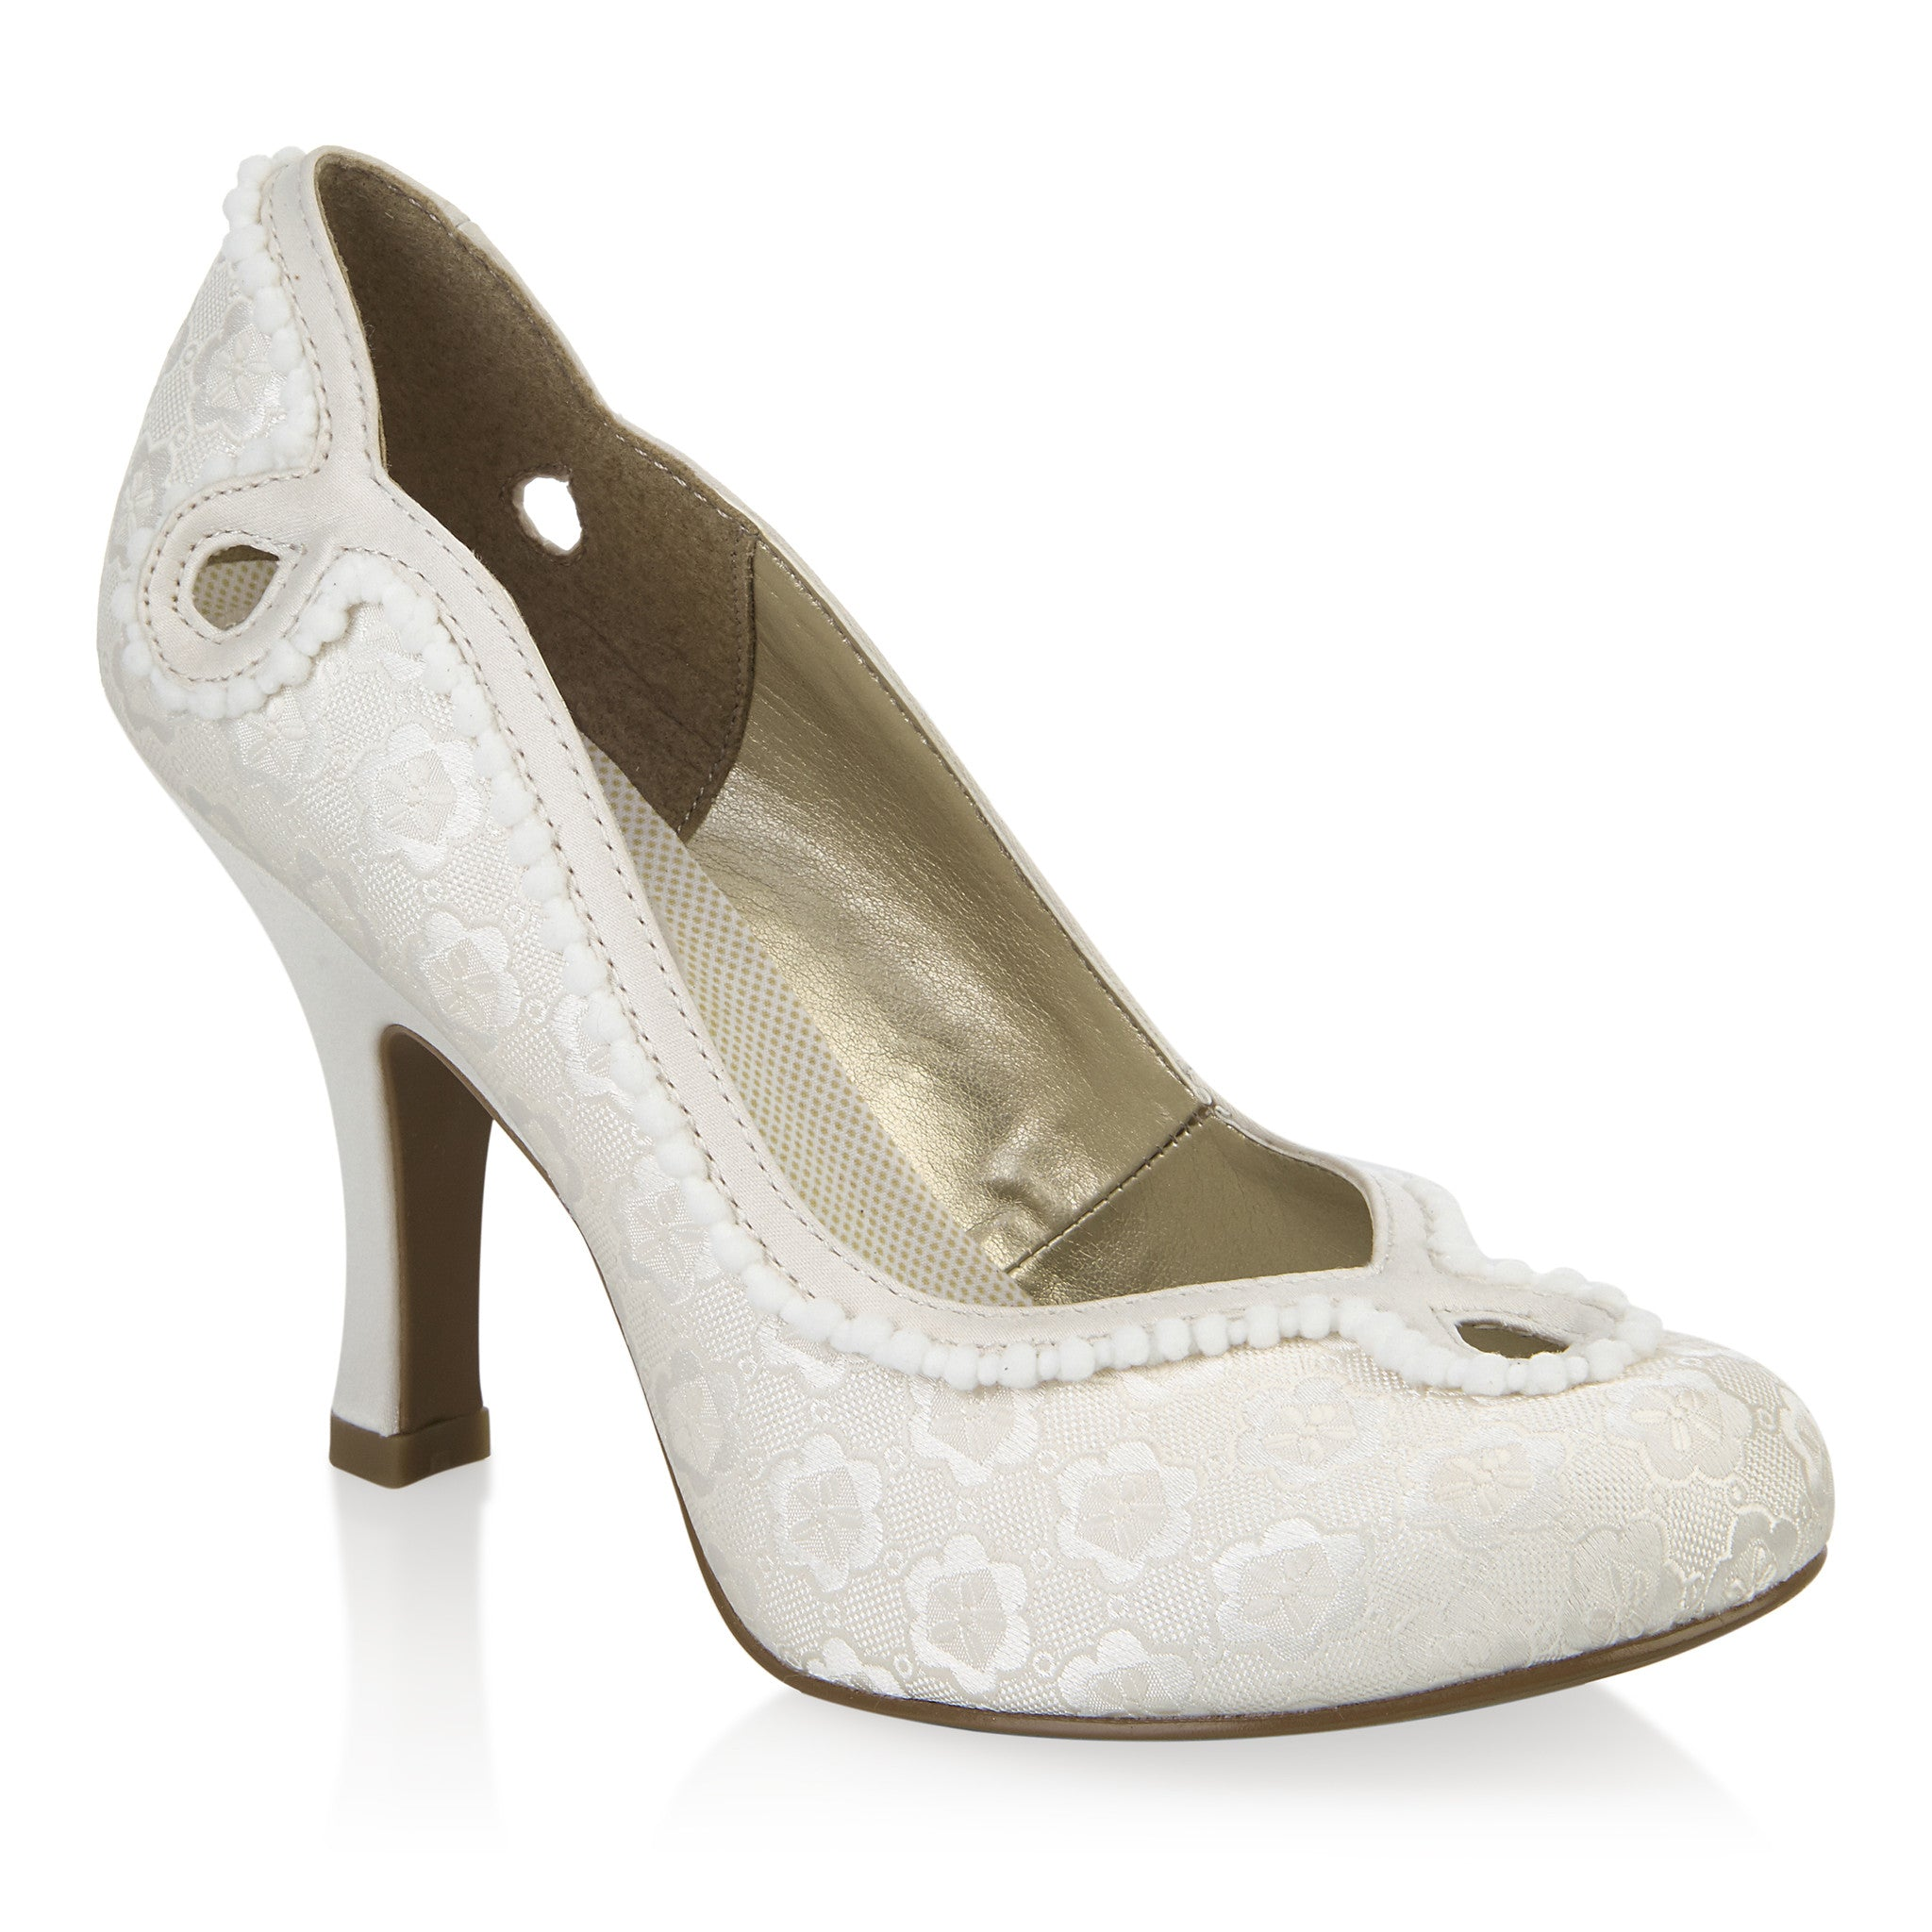 Bright Lunar Tancy Jlh078 Grey Pearl Sandal With Diamonte Trim Comfort Shoes Clothing, Shoes & Accessories